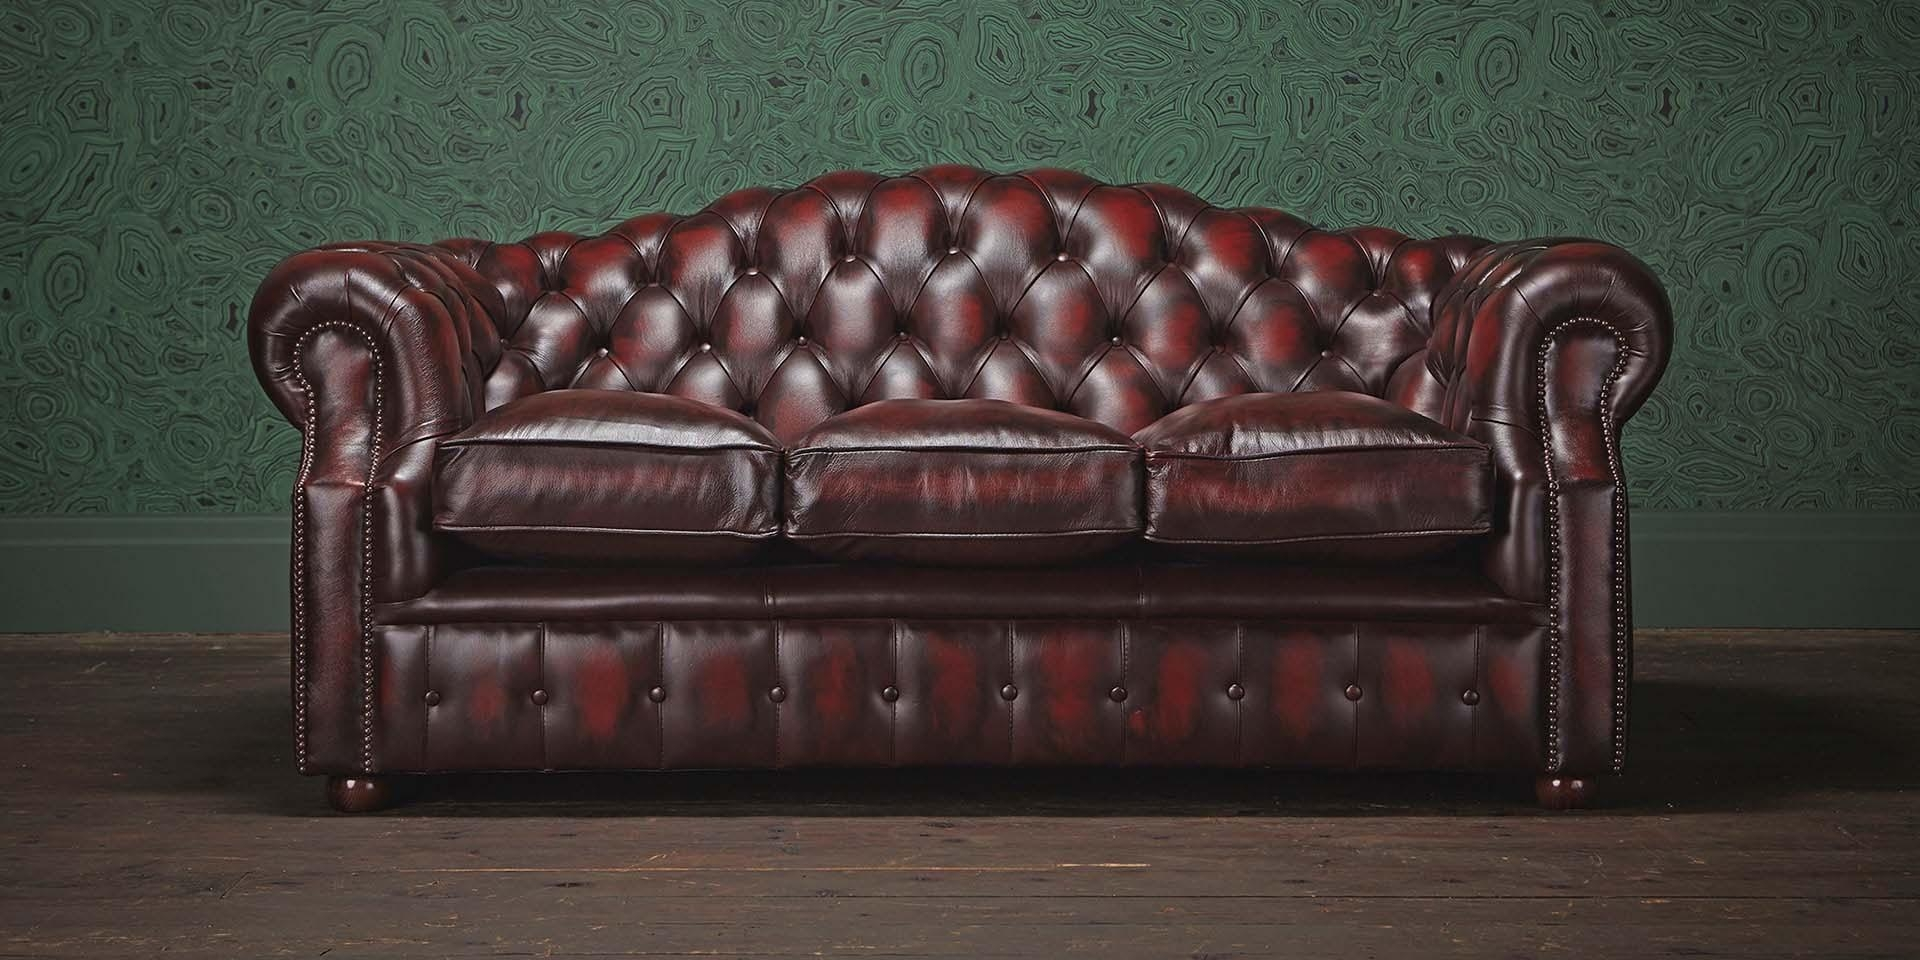 Chesterfield Sofas | Chesterfields Of England Regarding Chesterfield Sofas (View 3 of 20)